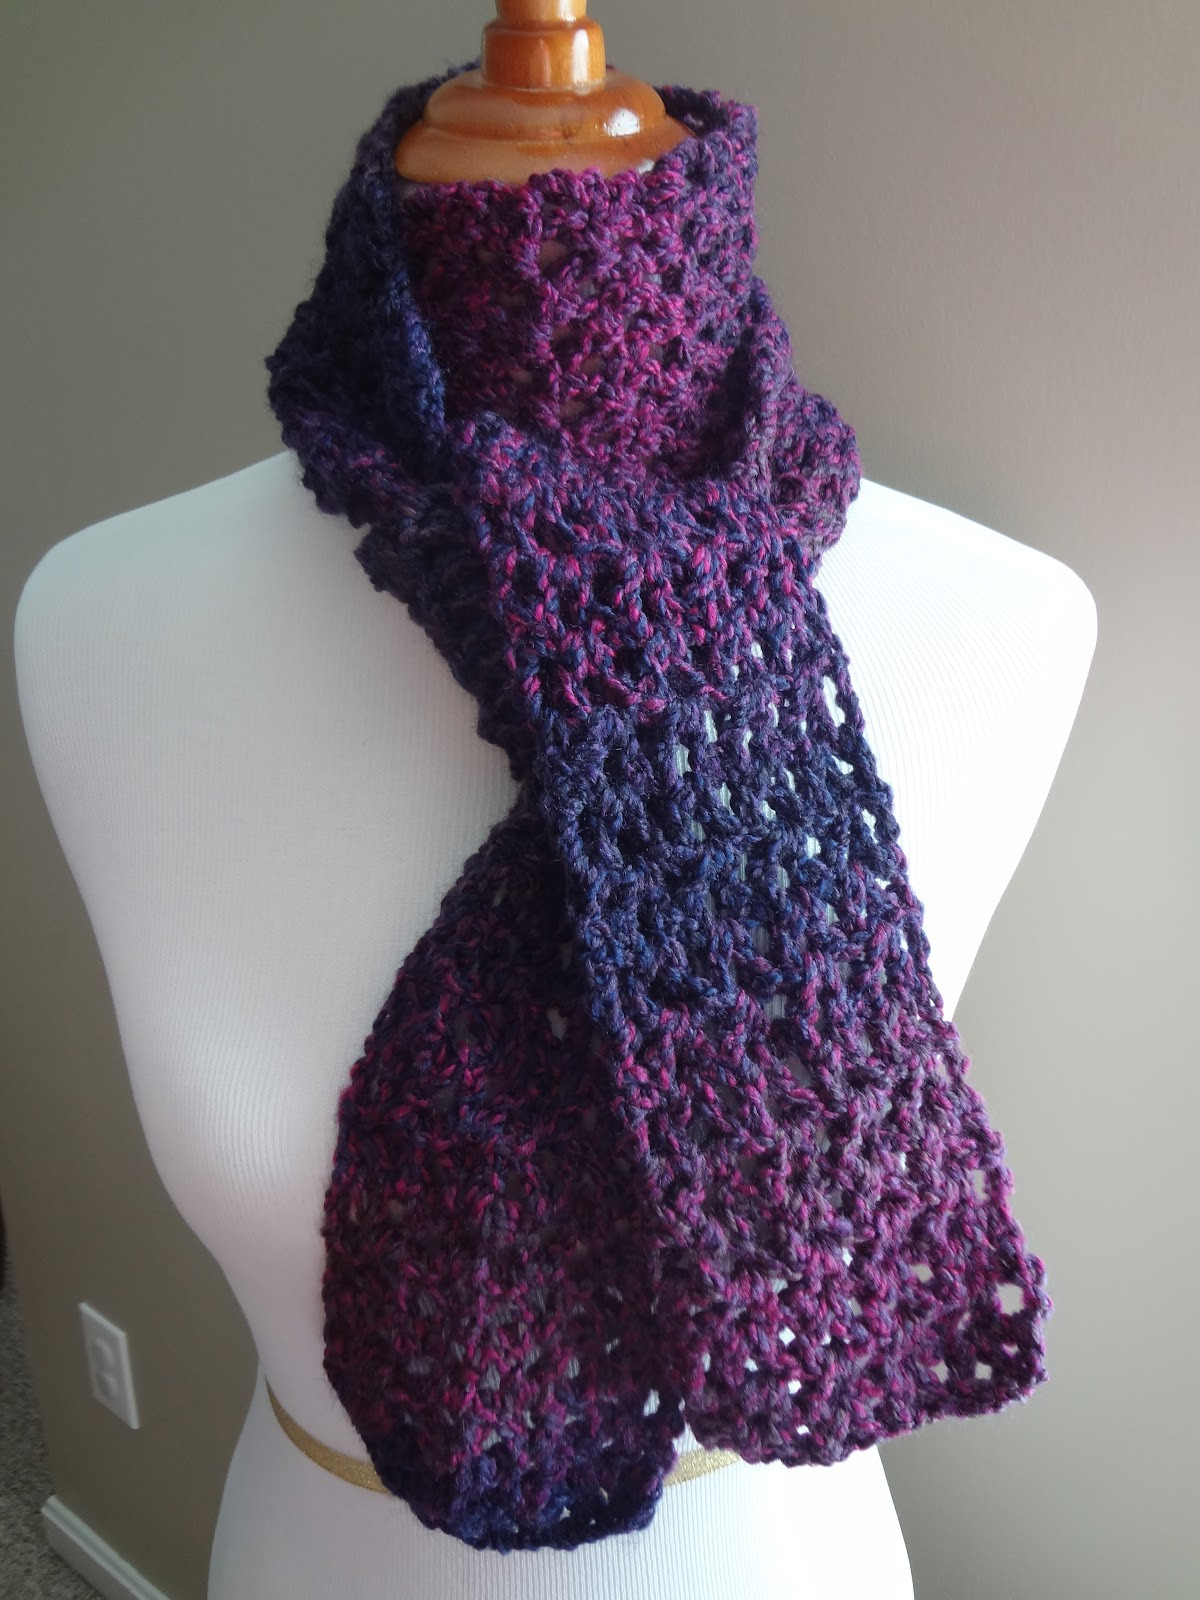 Lovely Crochet Patterns Free Scarf Crochet and Knit Cool Crochet Patterns Of Awesome 45 Ideas Cool Crochet Patterns